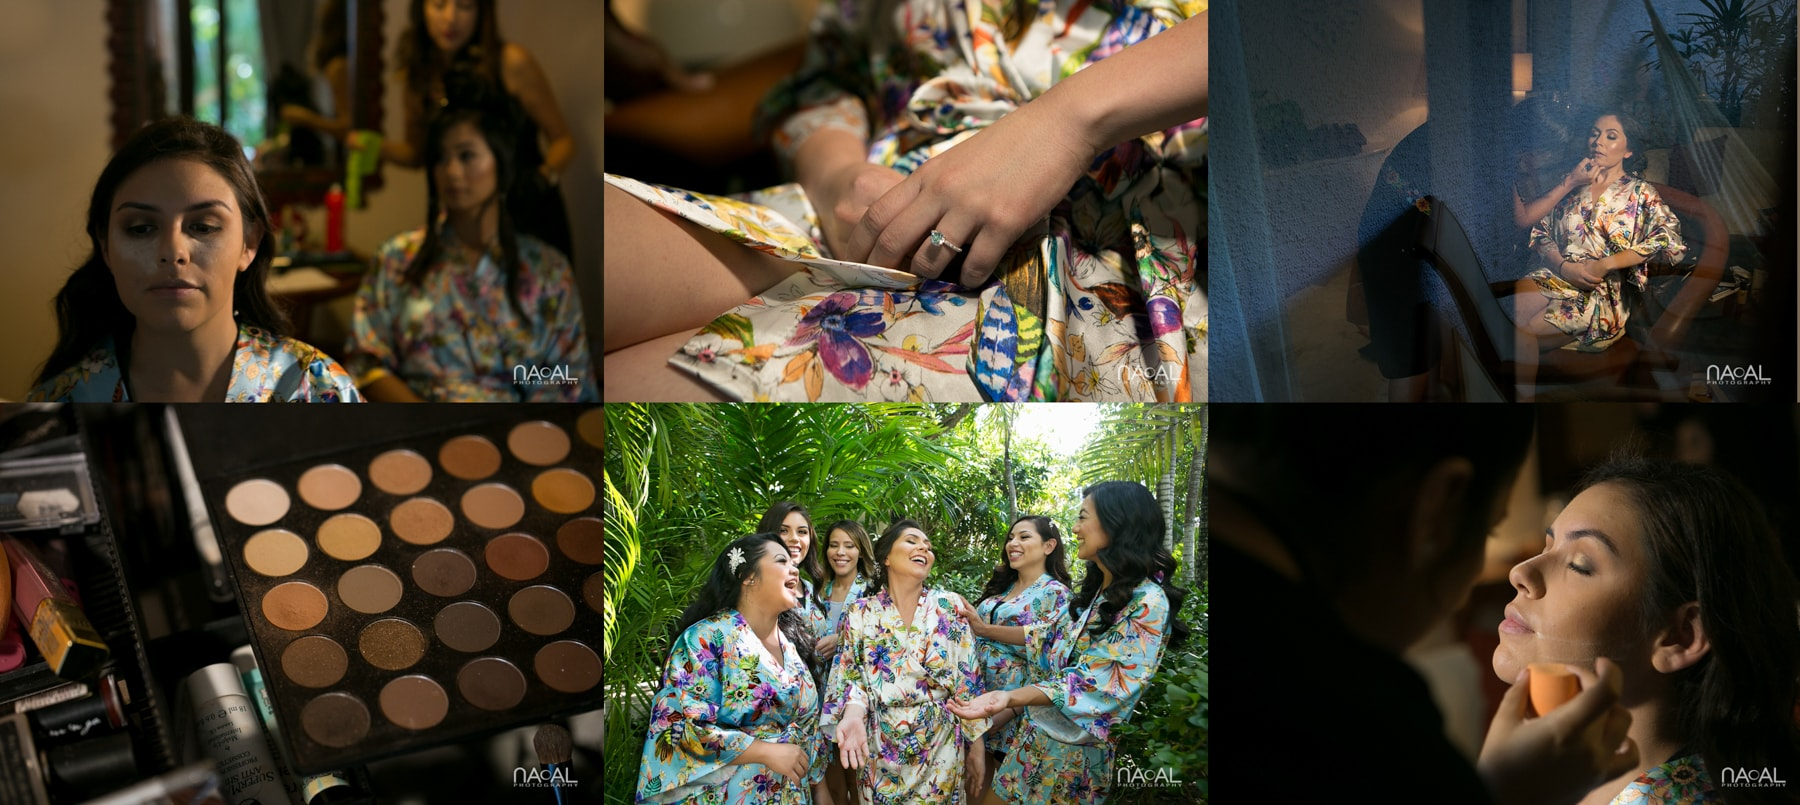 Belmond maroma, getting ready pictures, naal wedding photography